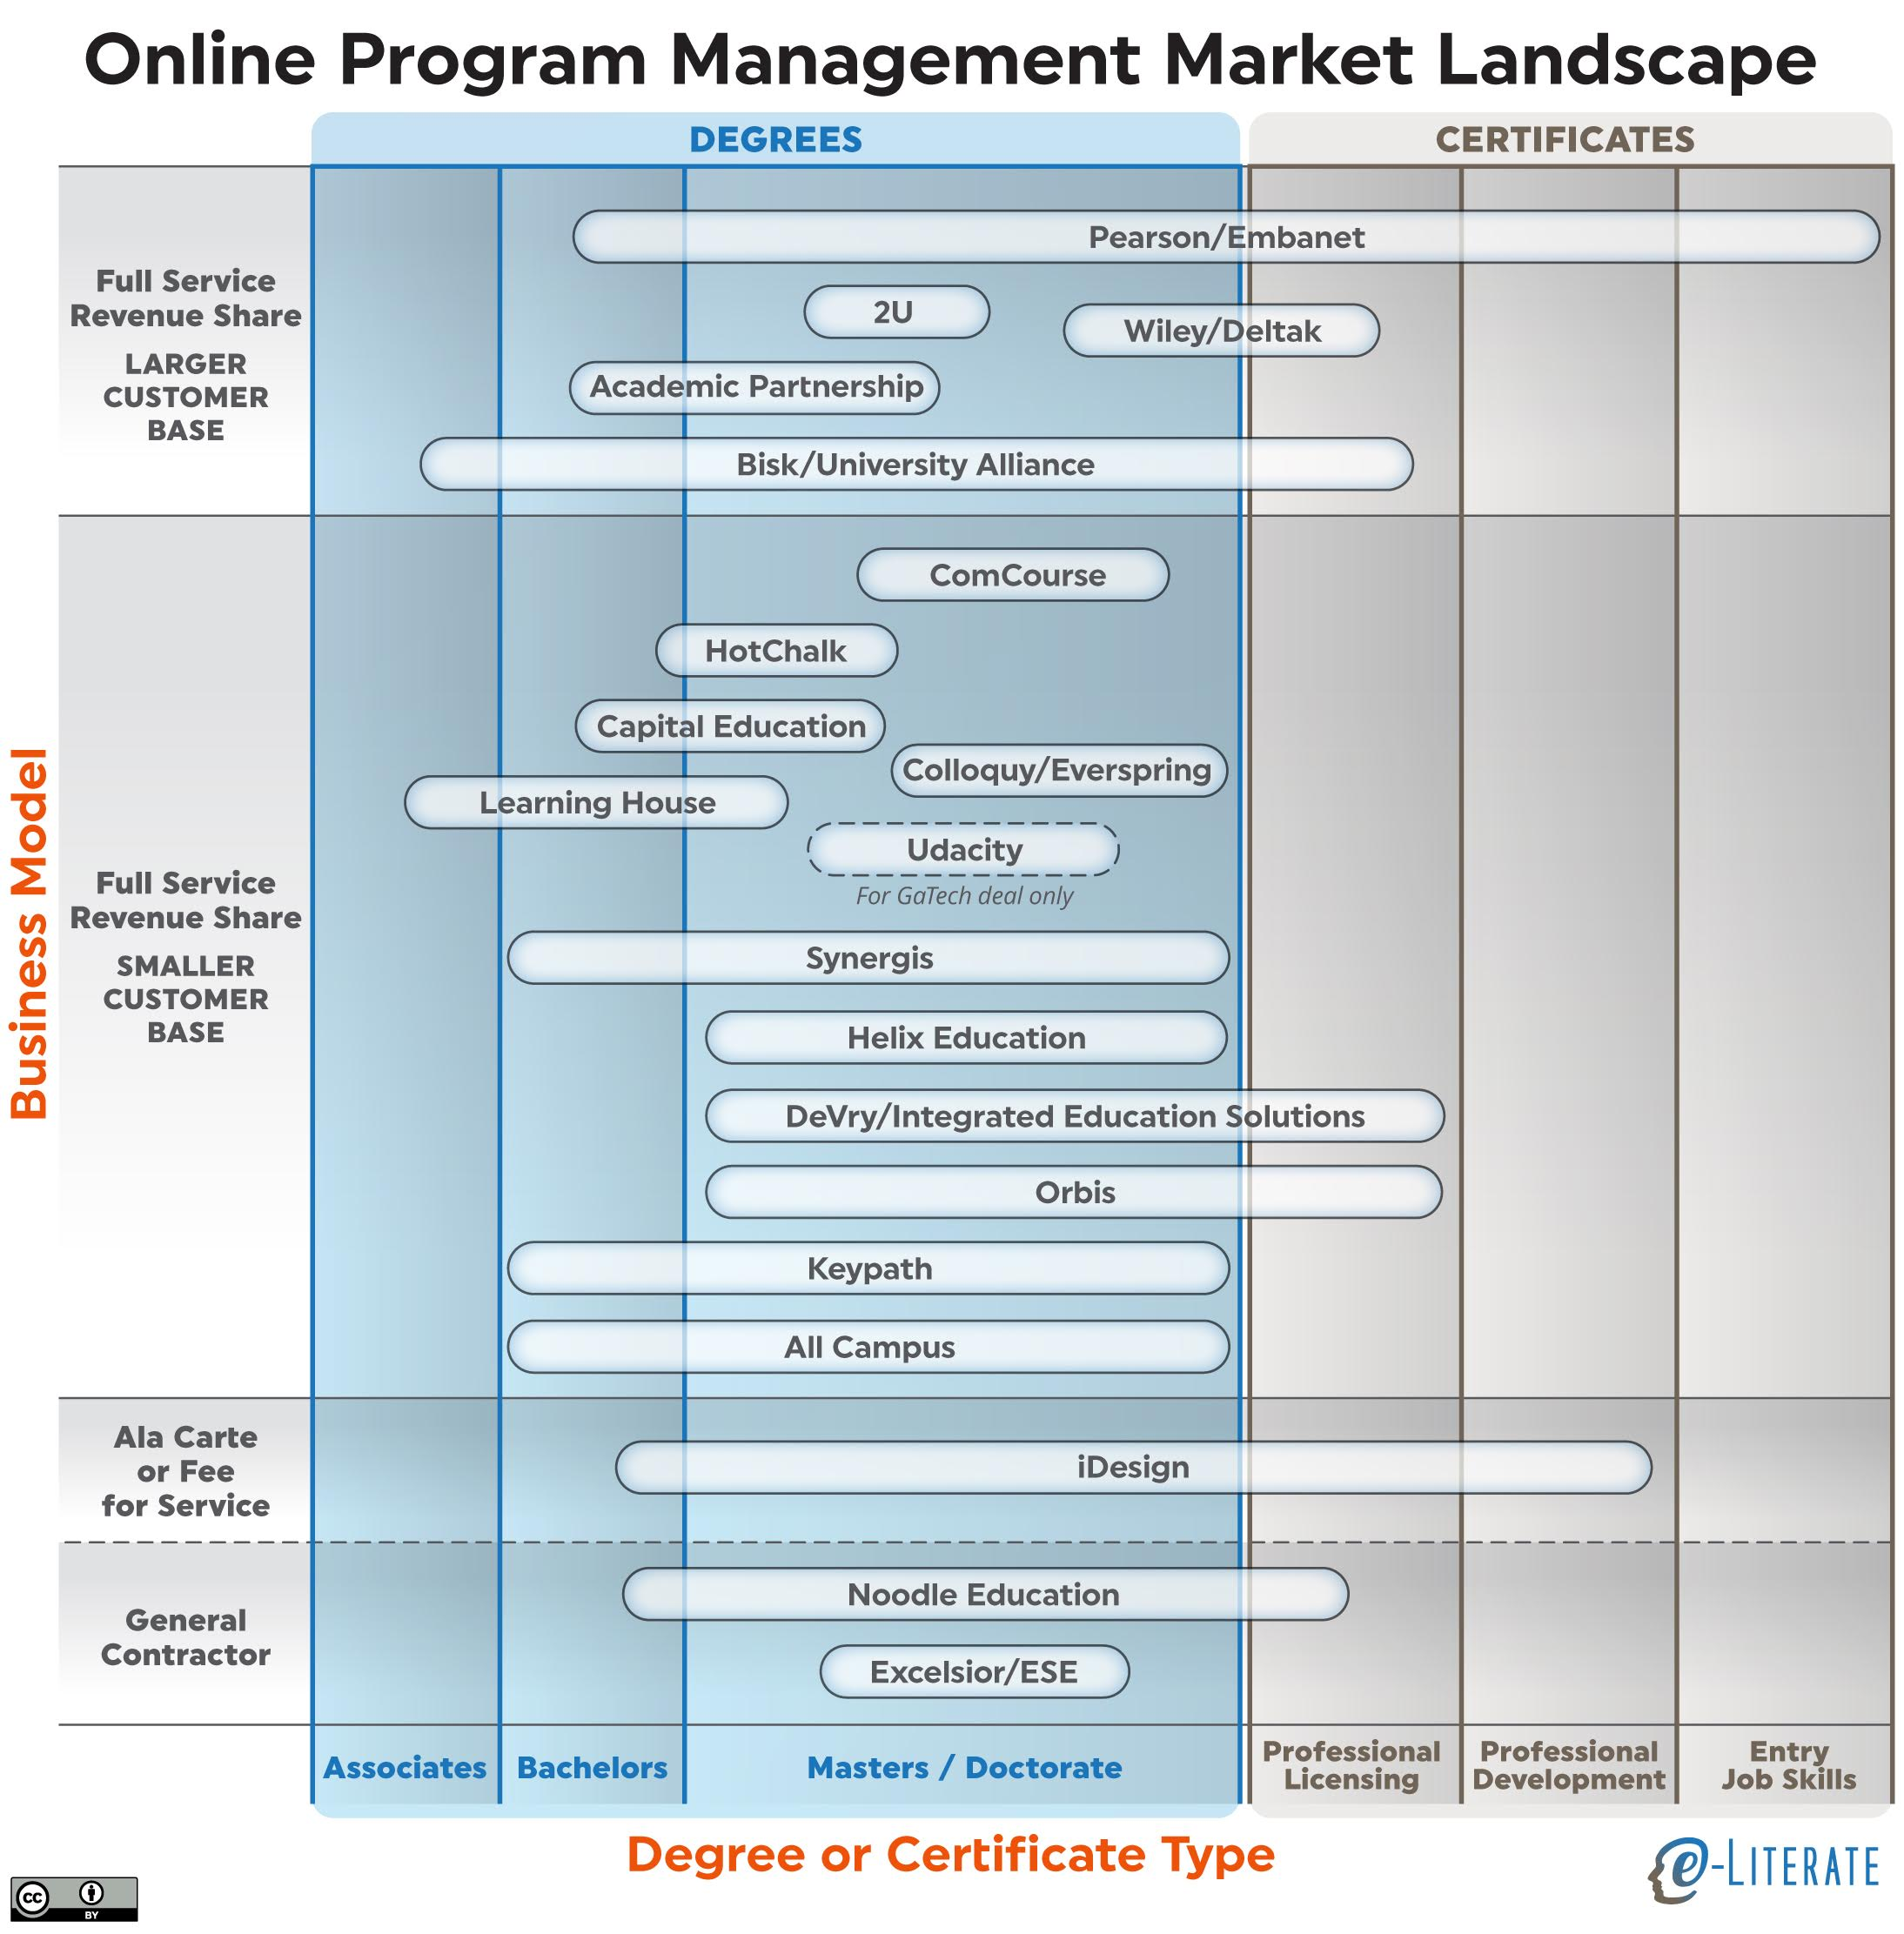 online program management a view of the market landscape